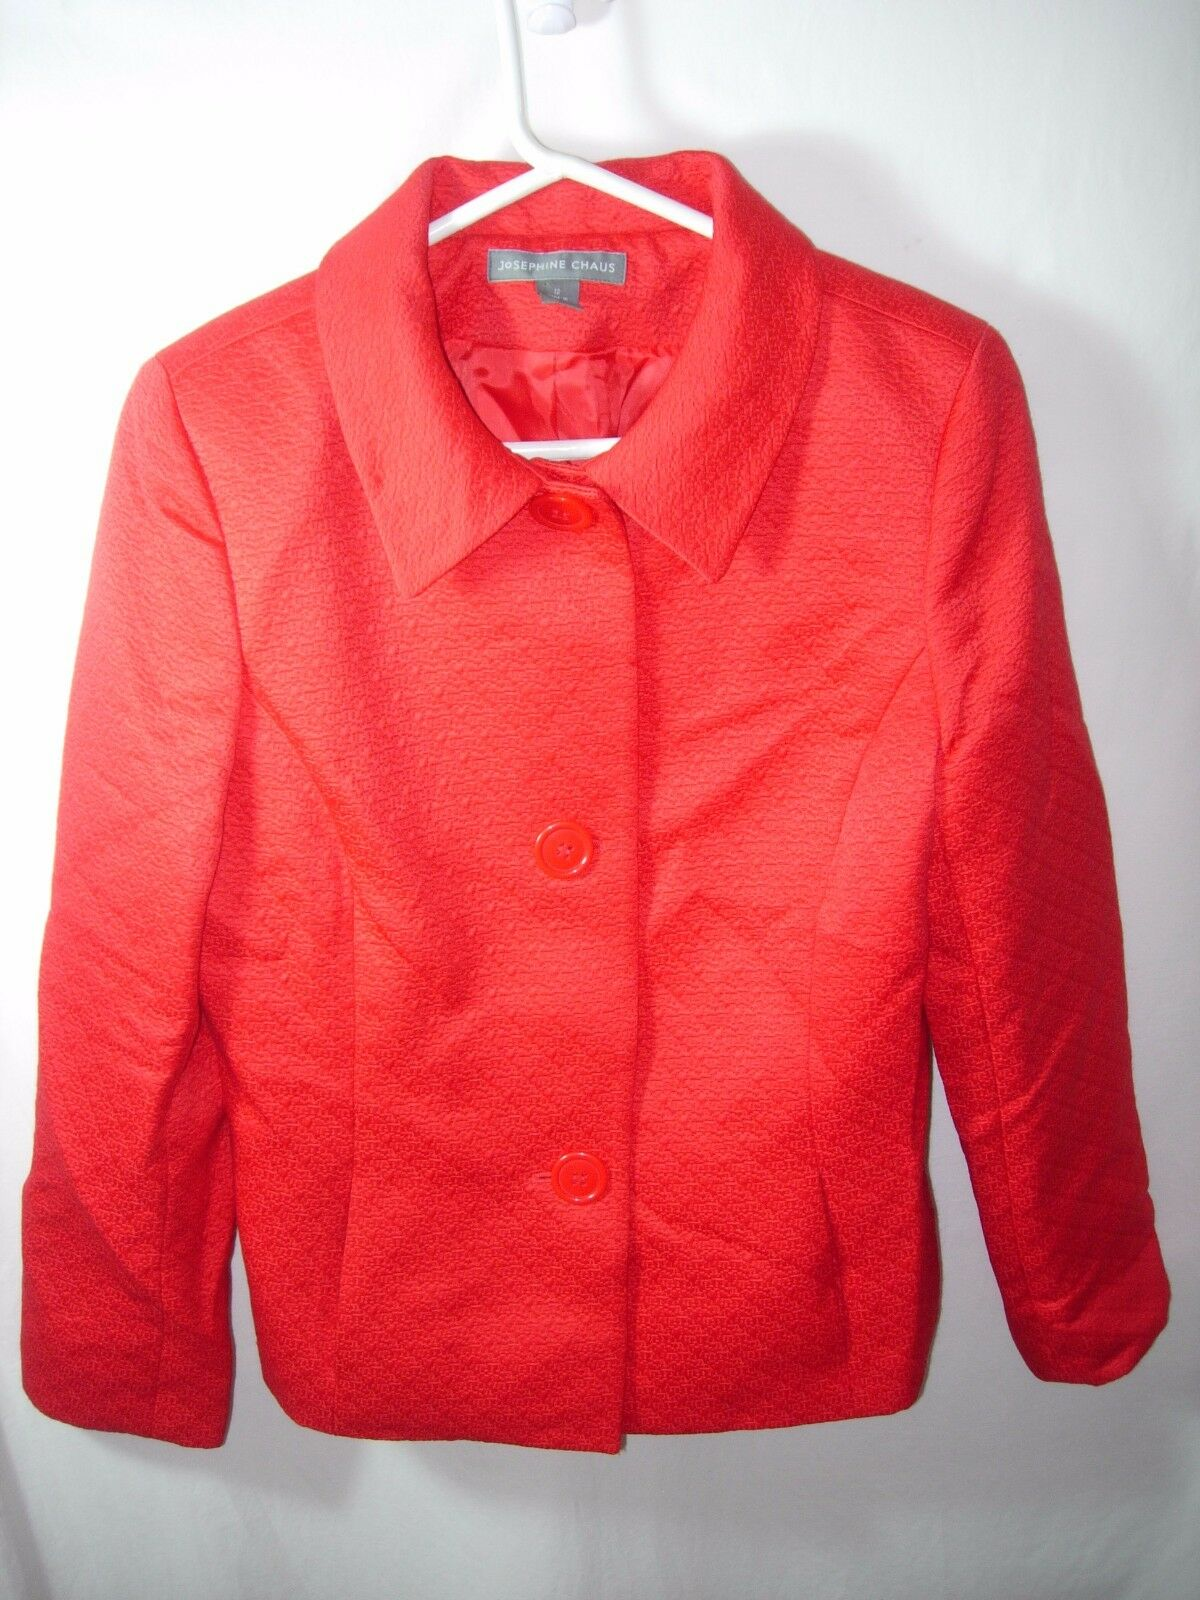 WOMENS RED JOSEPHINE CHAUS MOTHER OF THE BRIDE SUIT JACKET BLAZER SIZE 12 42